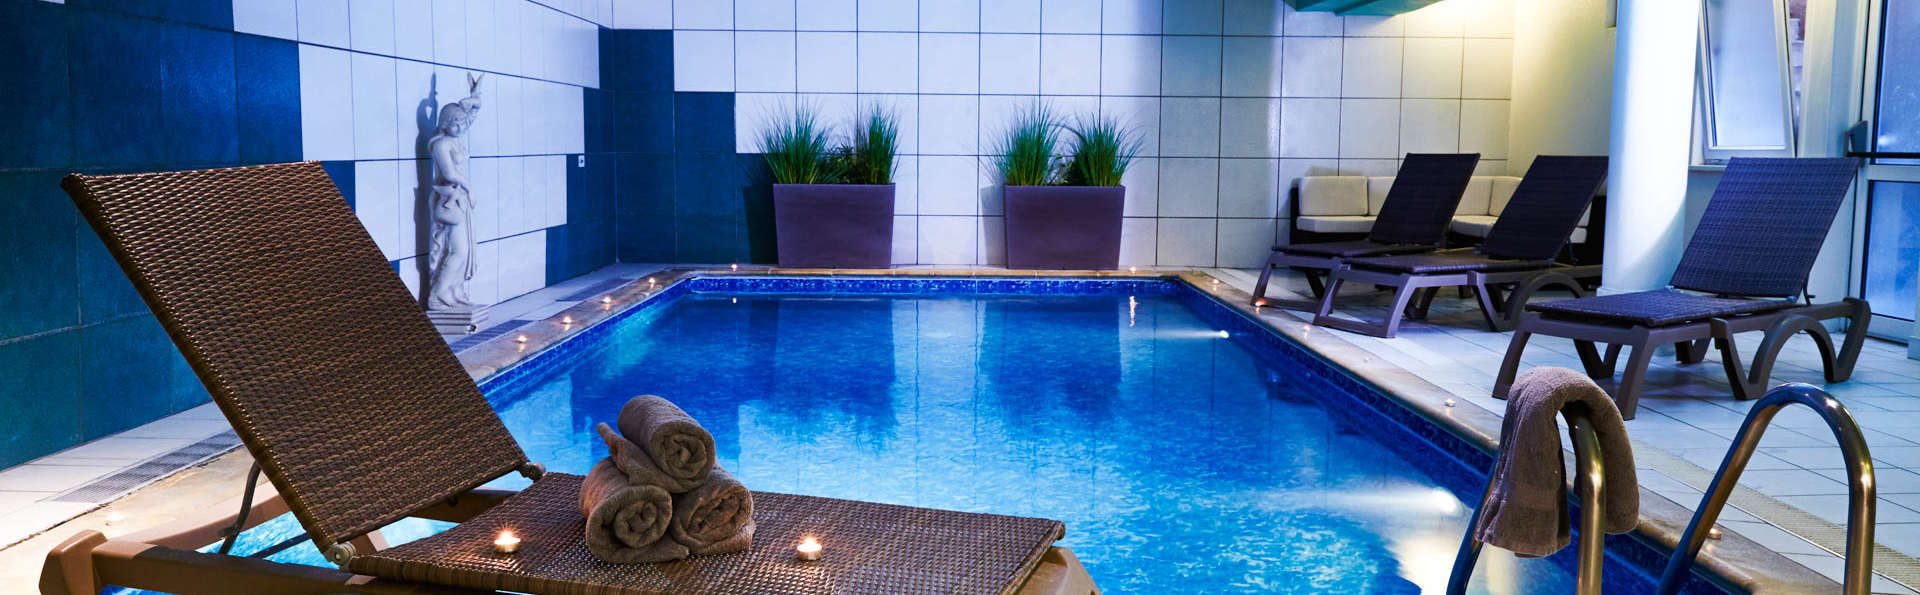 Best Western Plus Au Cheval Blanc Mulhouse Nord - EDIT_N2_WELLNESS.jpg